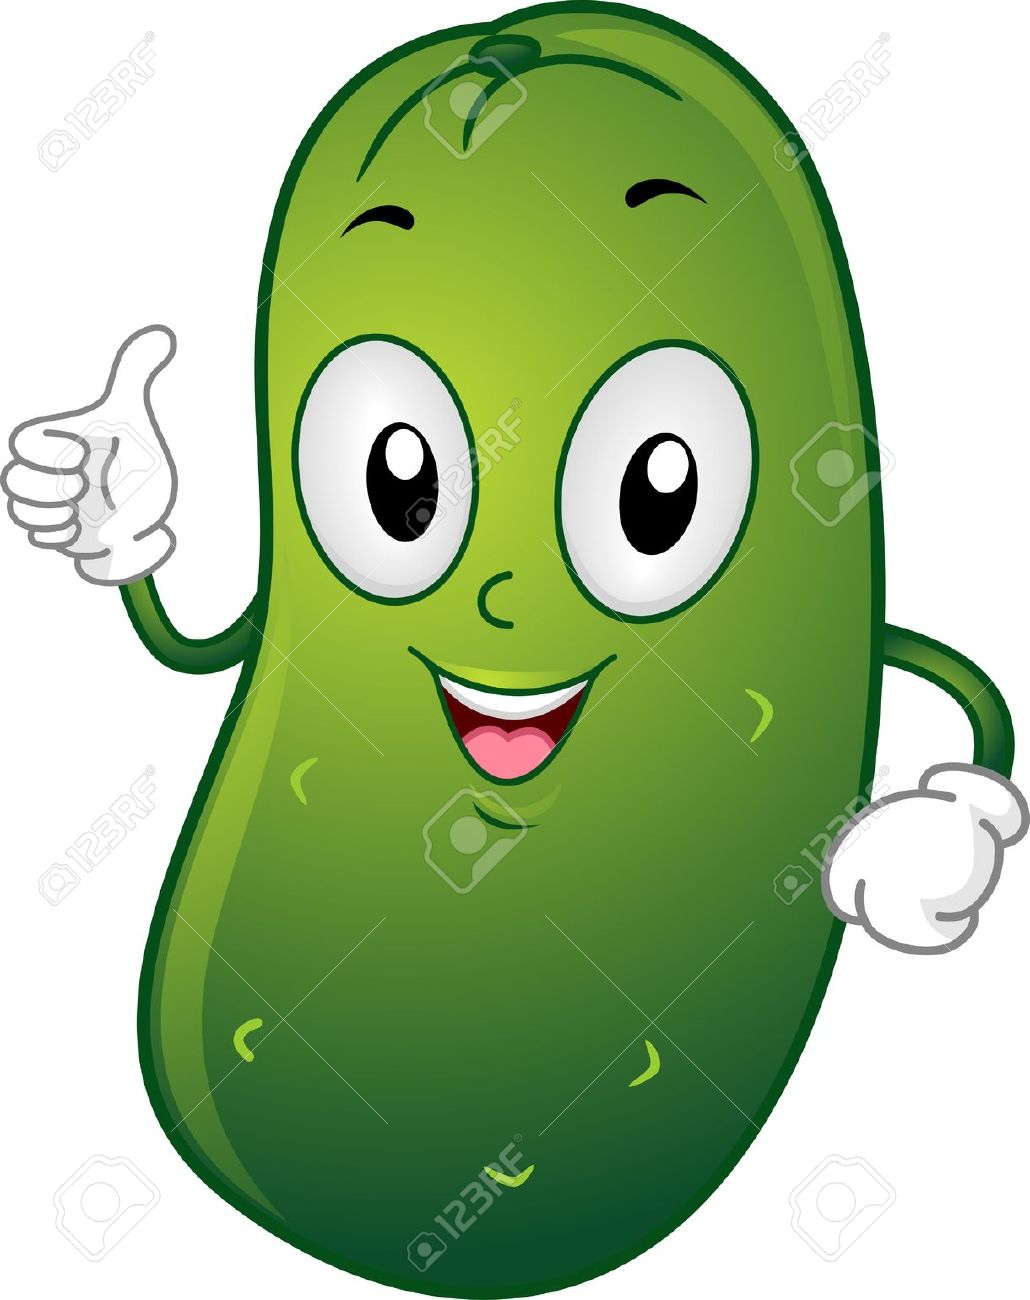 Pickle clipart. Funny  svg free download